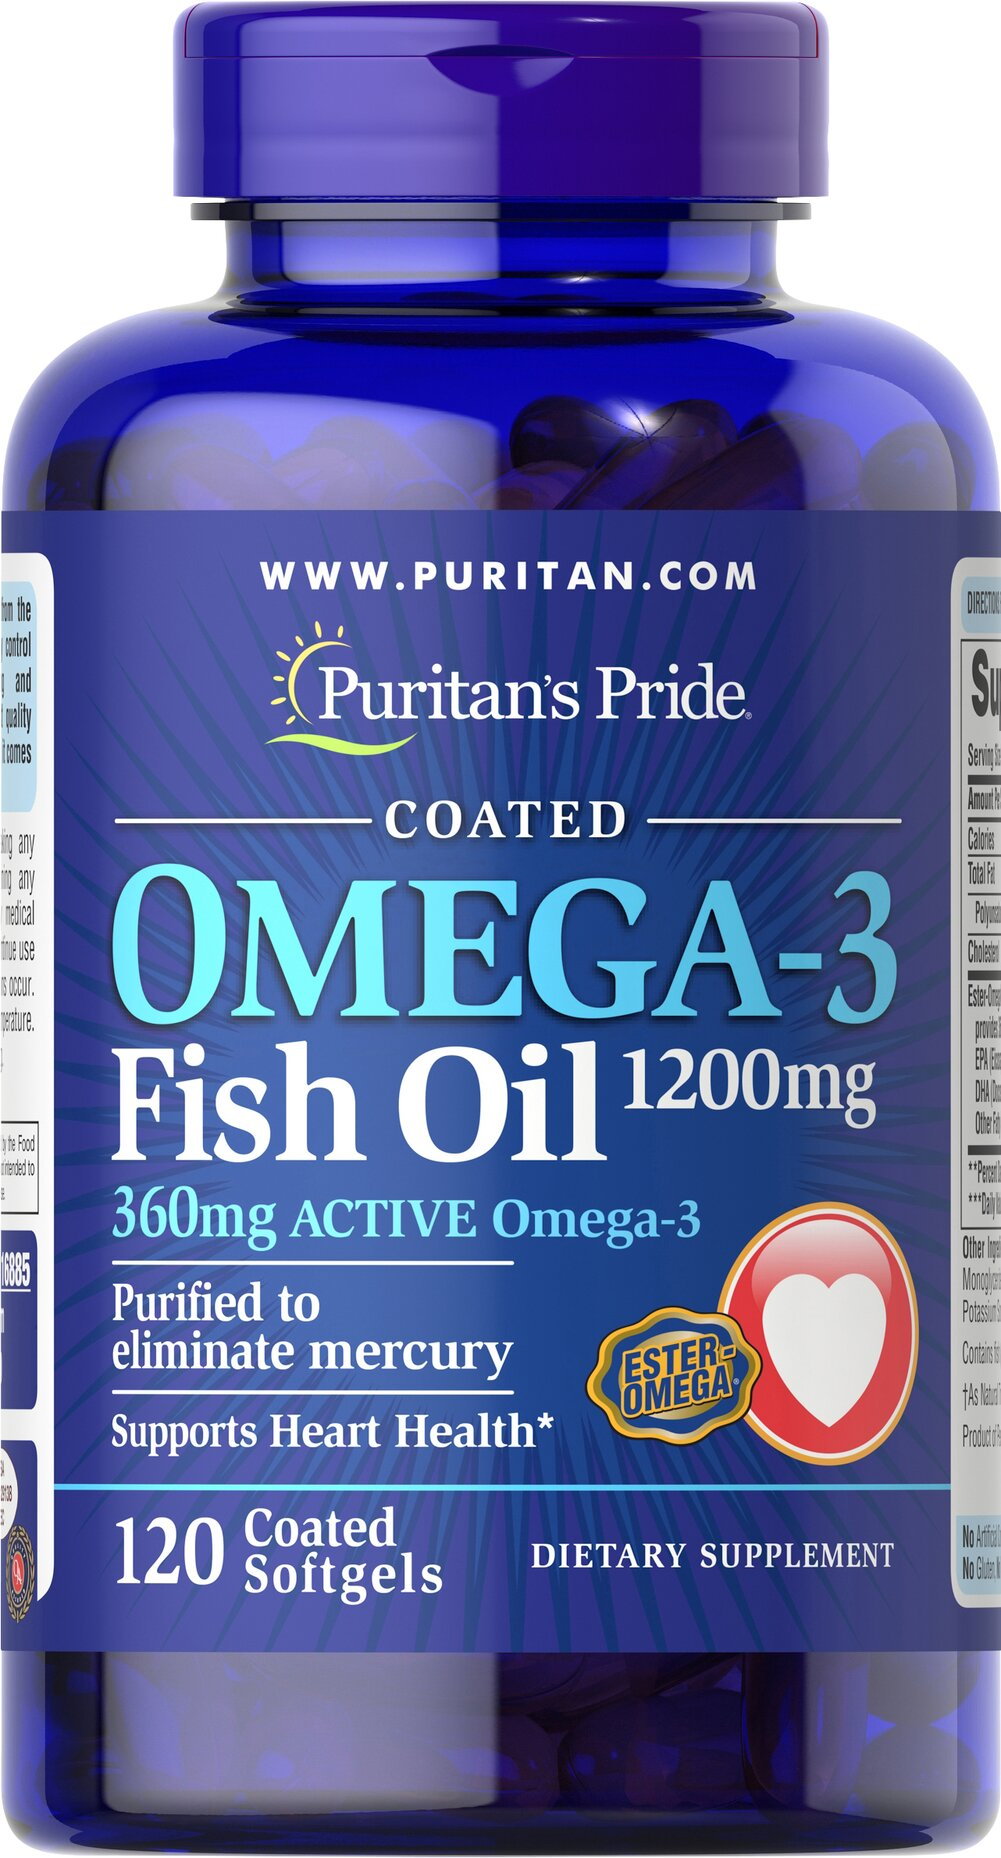 Omega-3 Fish Oil Coated 1200 mg (360 mg Active Omega-3) Thumbnail Alternate Bottle View